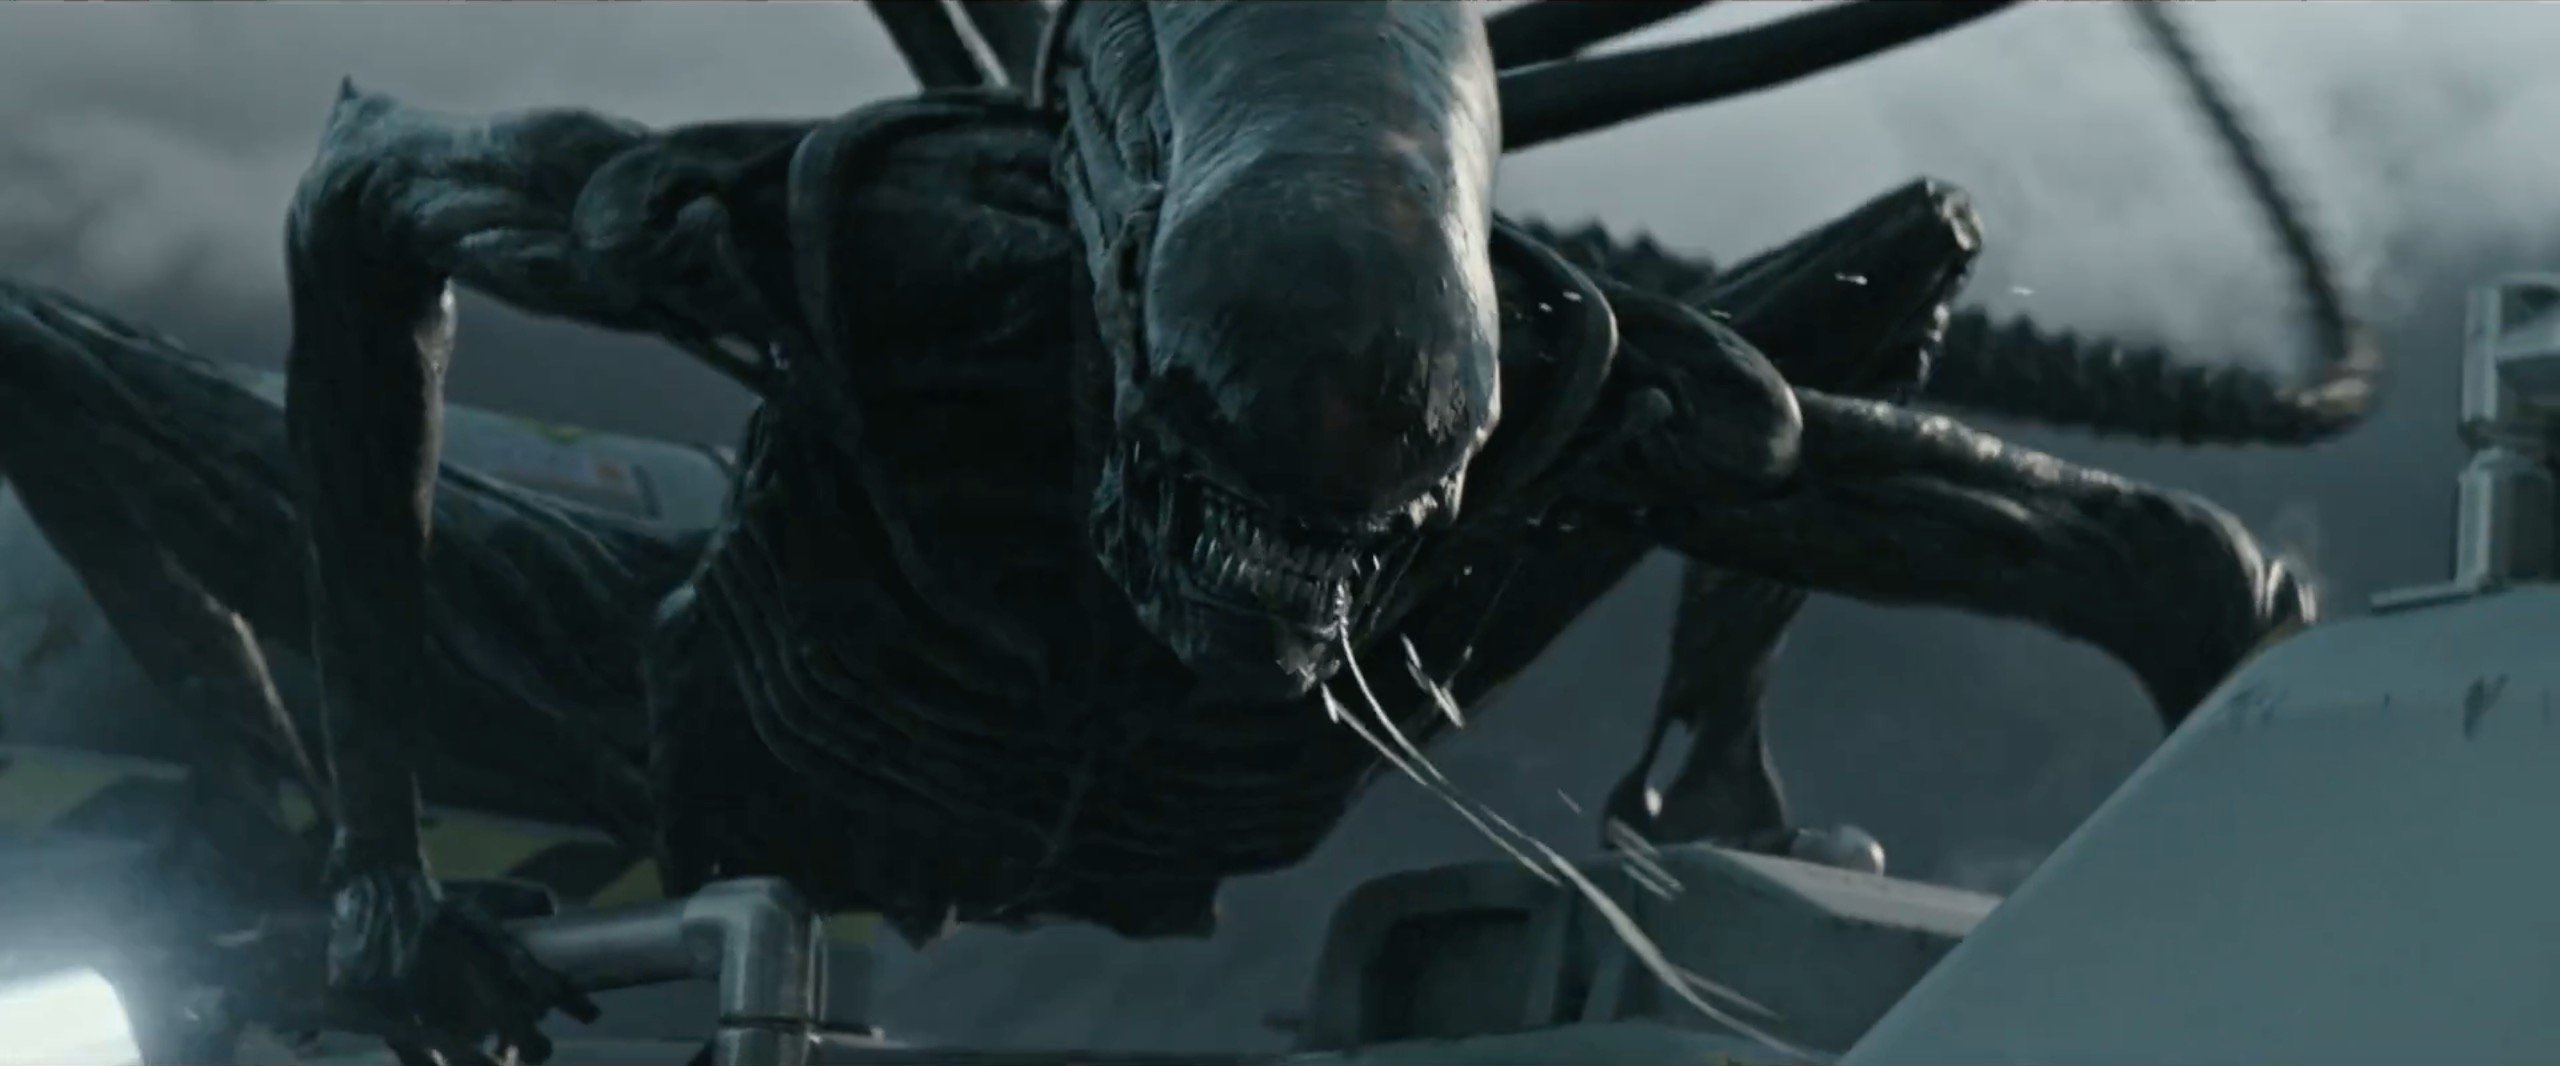 alien-covenant-trailer-breakdown-59.jpg